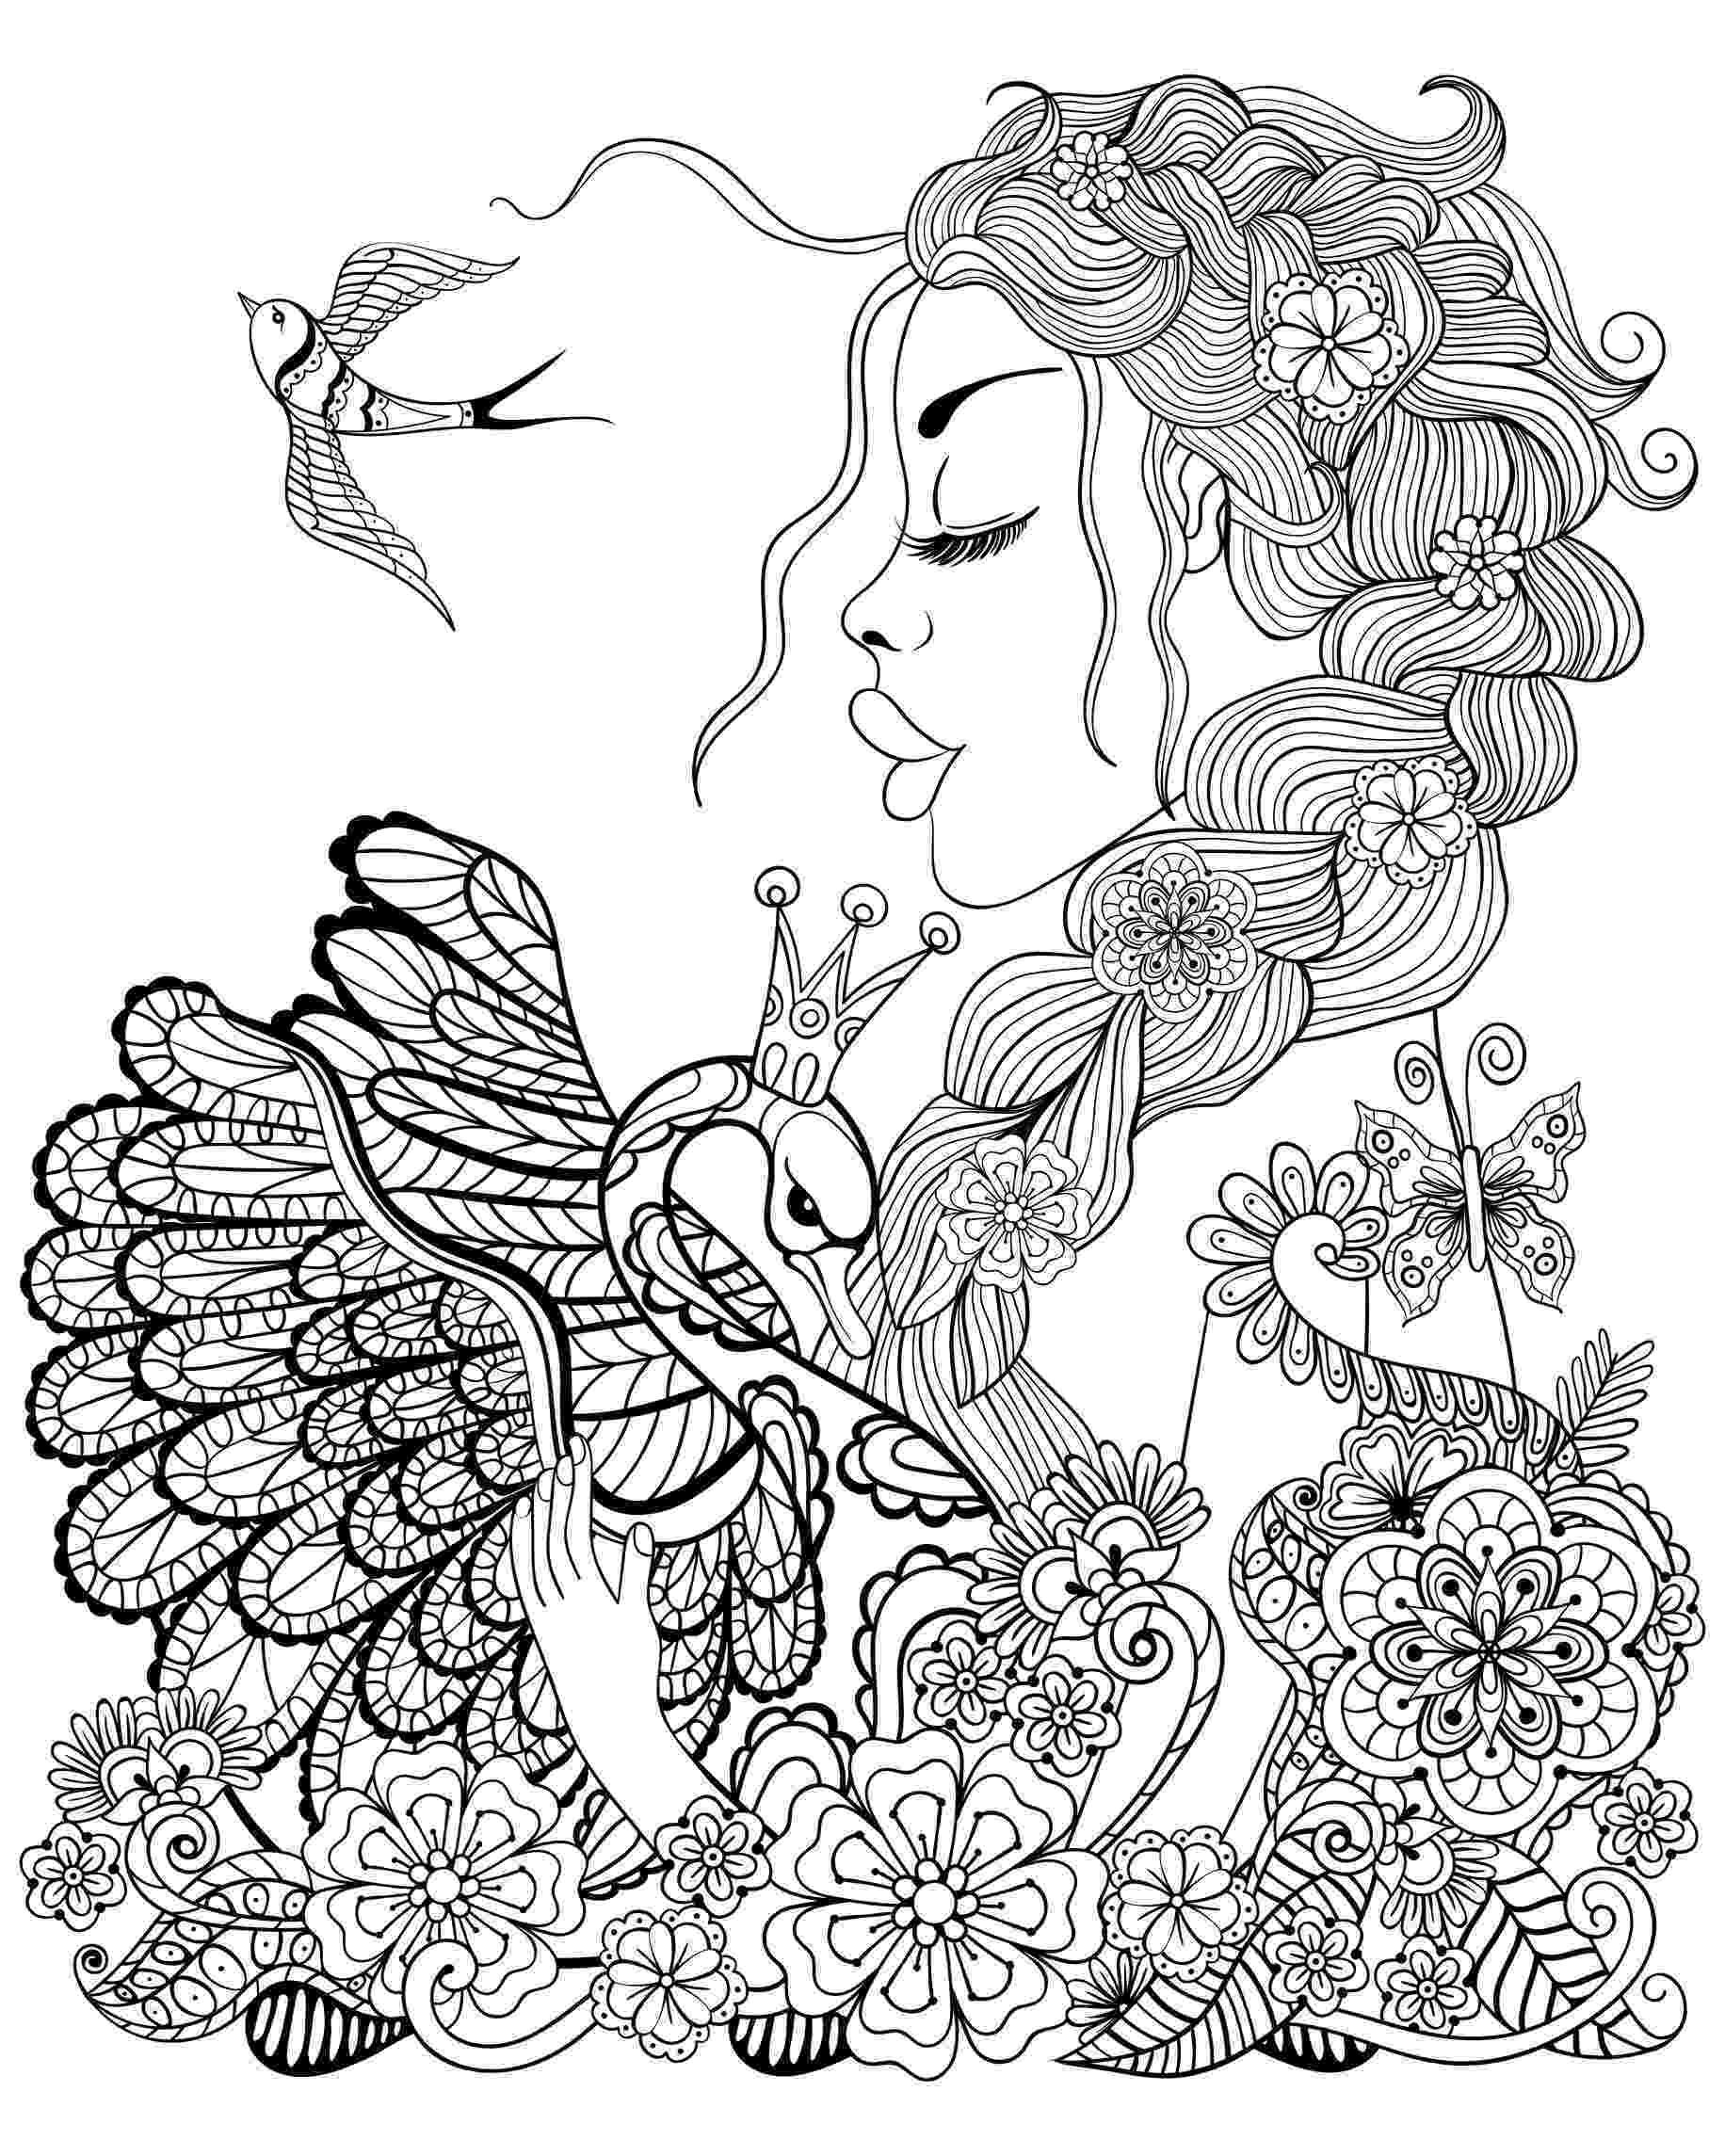 fairy pictures to color fairy coloring pages to bring out the hidden artist in pictures to color fairy